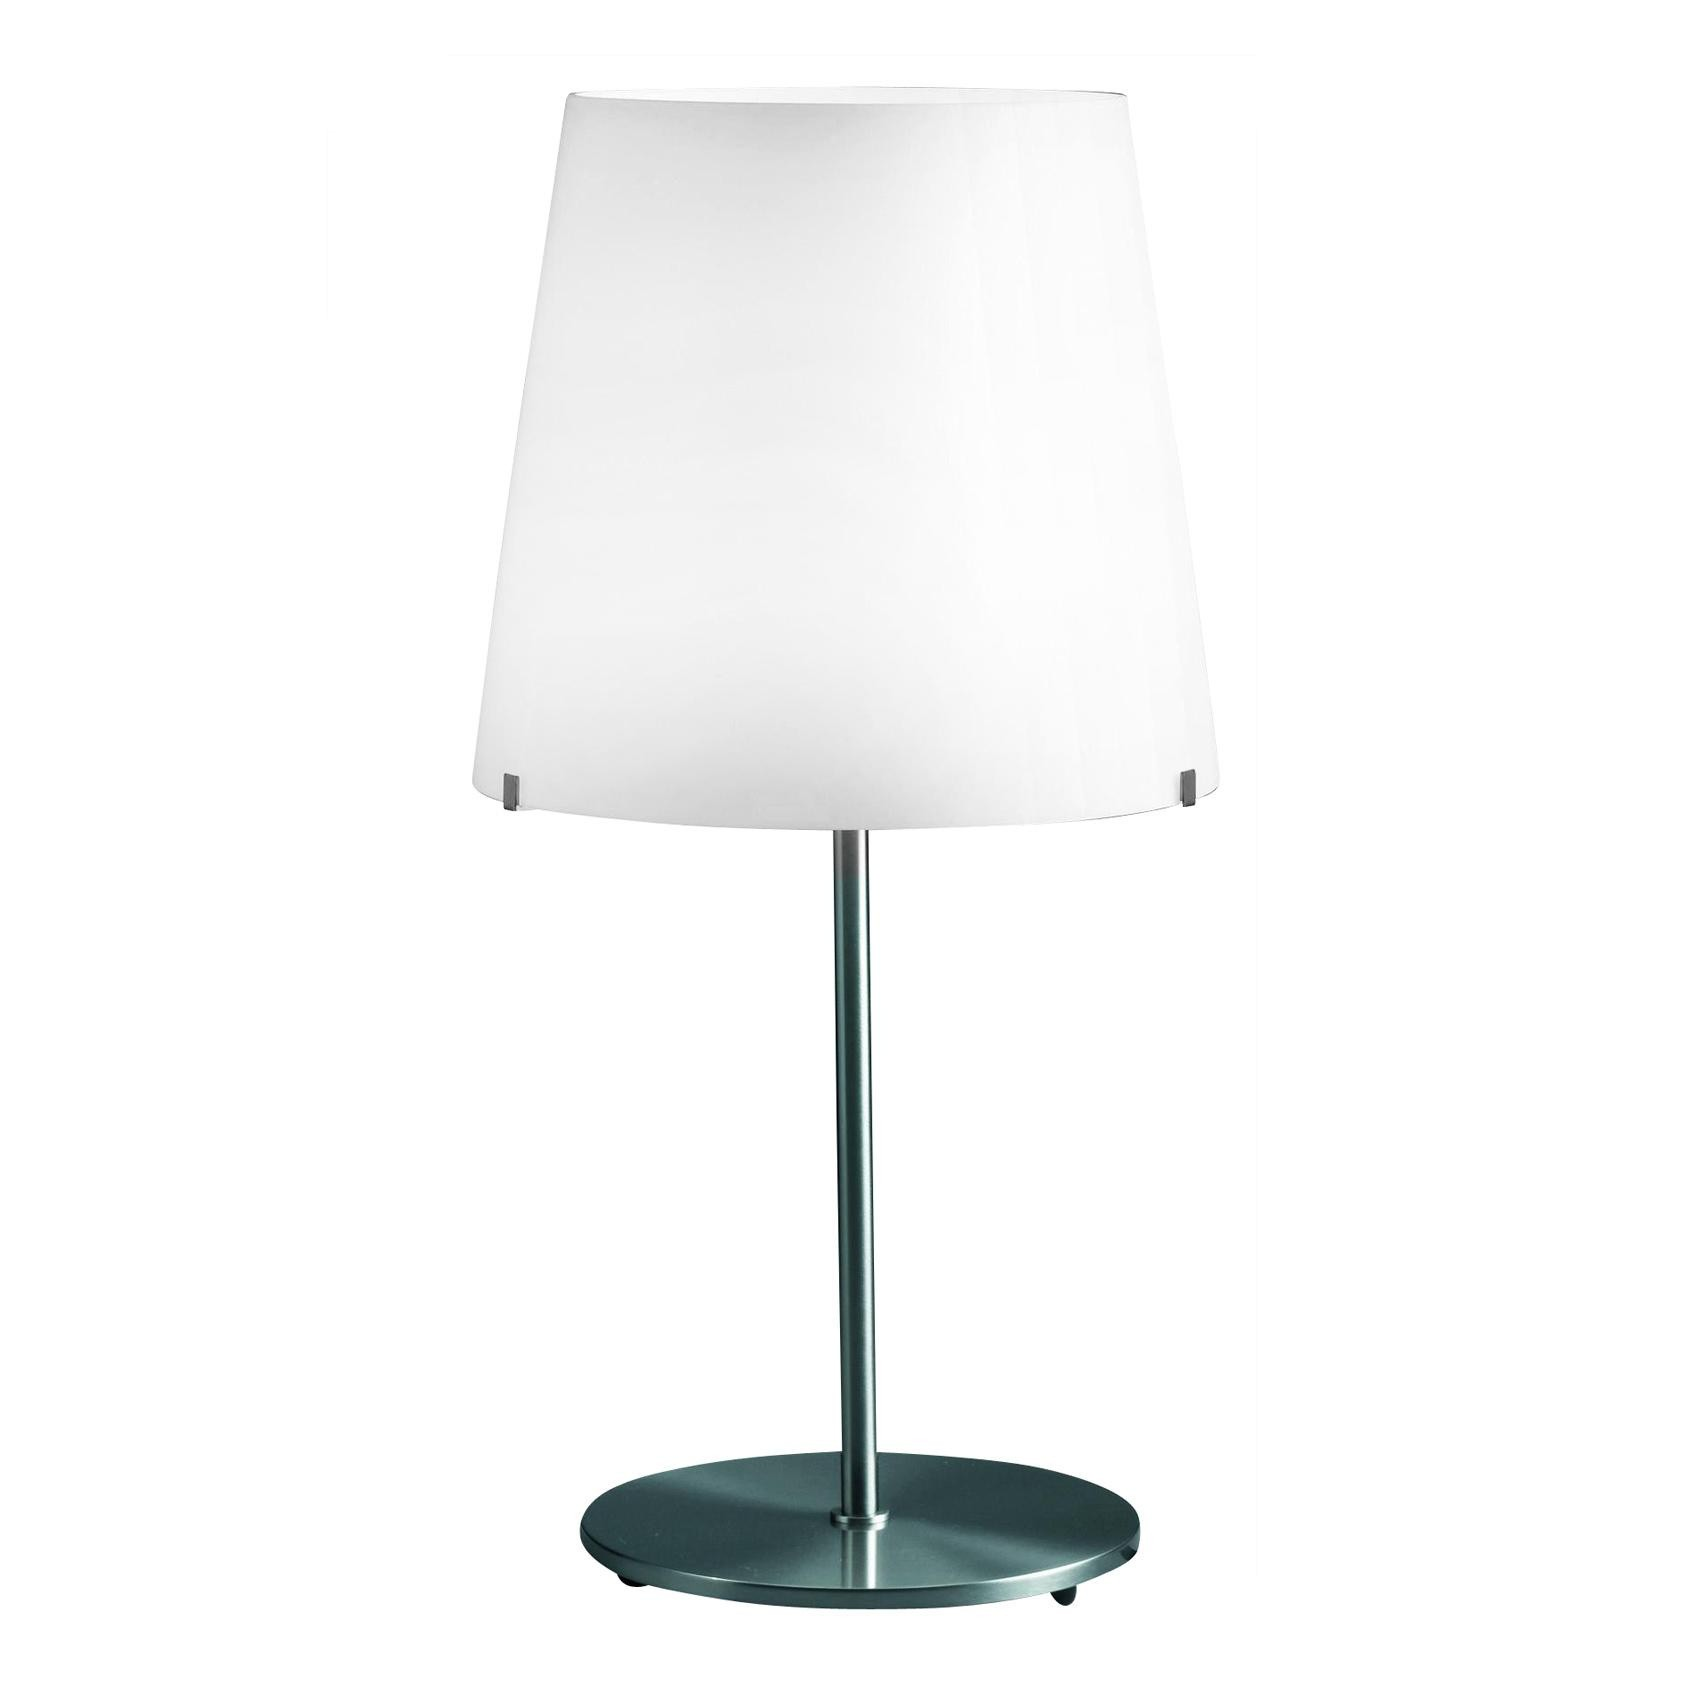 fontana arte 3247ta table lamp ambientedirect rh ambientedirect com